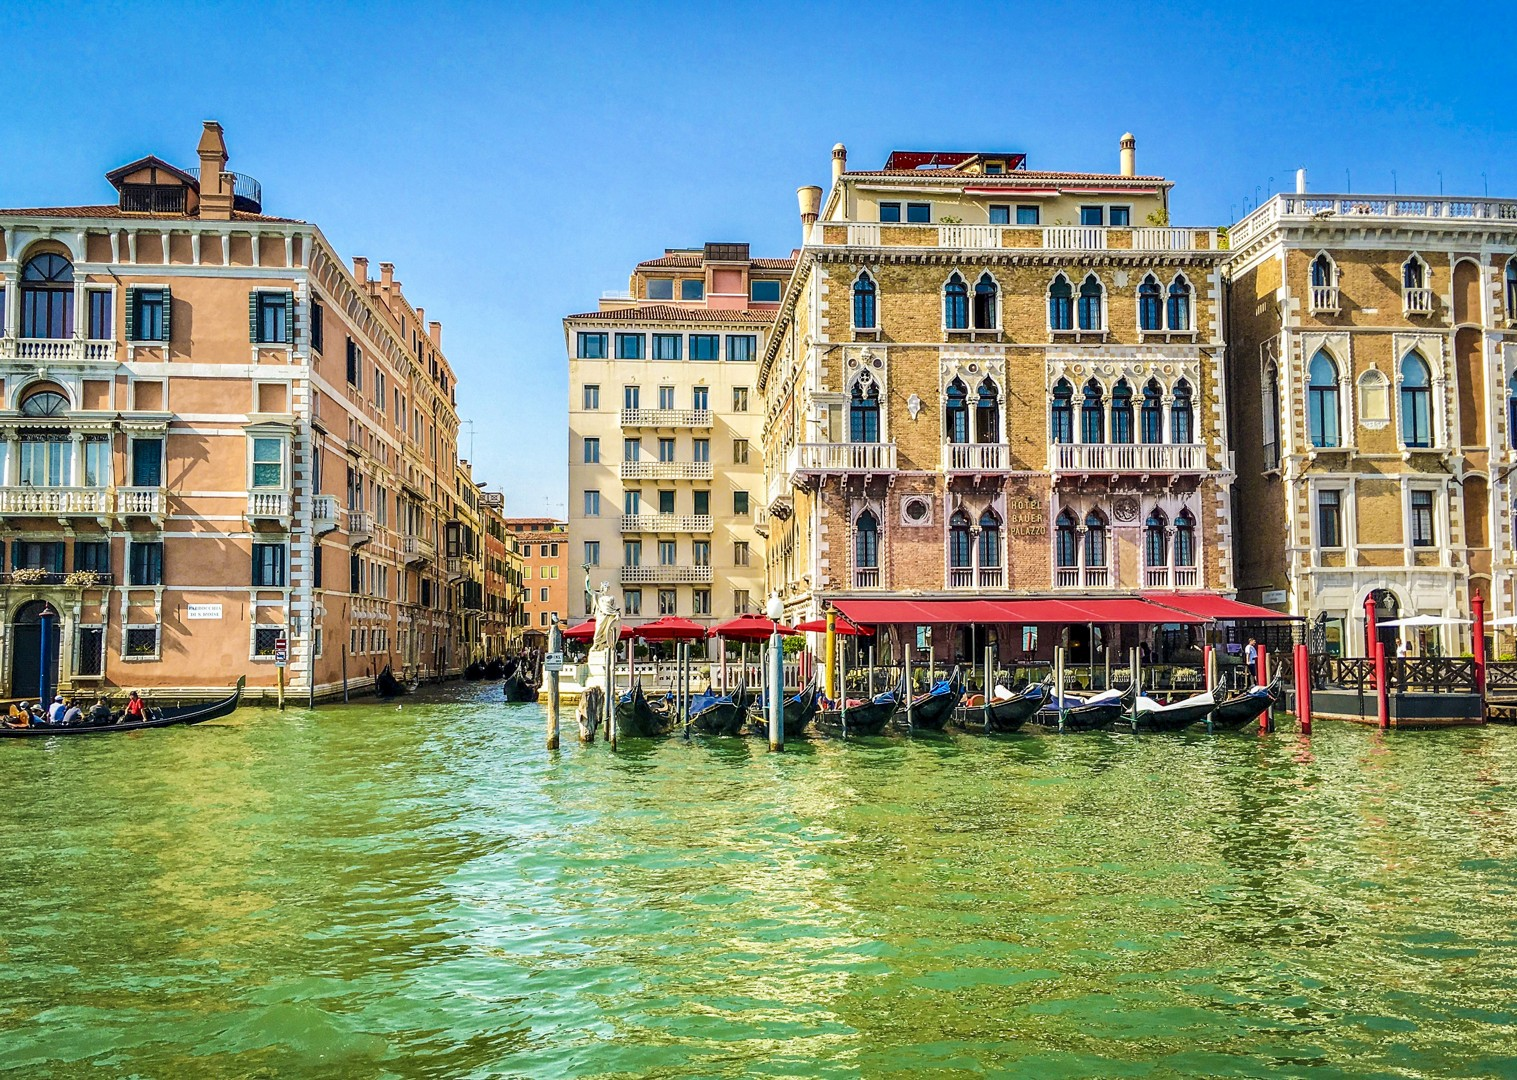 incredible-architecture-venice-city-visit-by-bike-and-boat-holiday.jpg - Italy - Venetian Waterways (Venice to Mantova) - Bike and Barge Holiday - Leisure Cycling